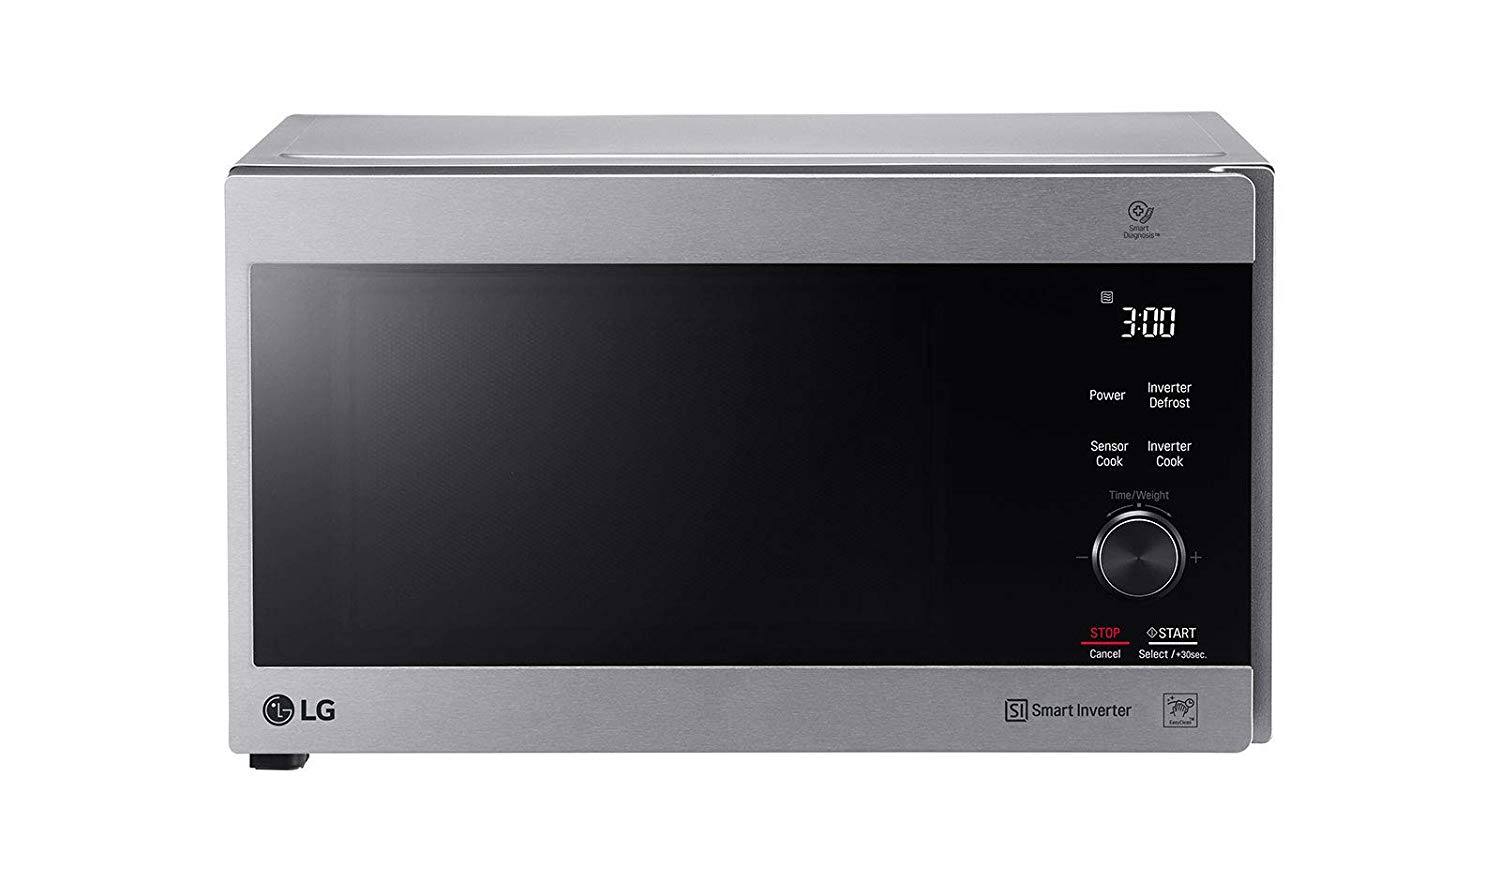 LG MH8265CIS NeoChef Smart Inverter Microwave Oven w/Grill, 220V (Not for USA) 42-Liter Silver